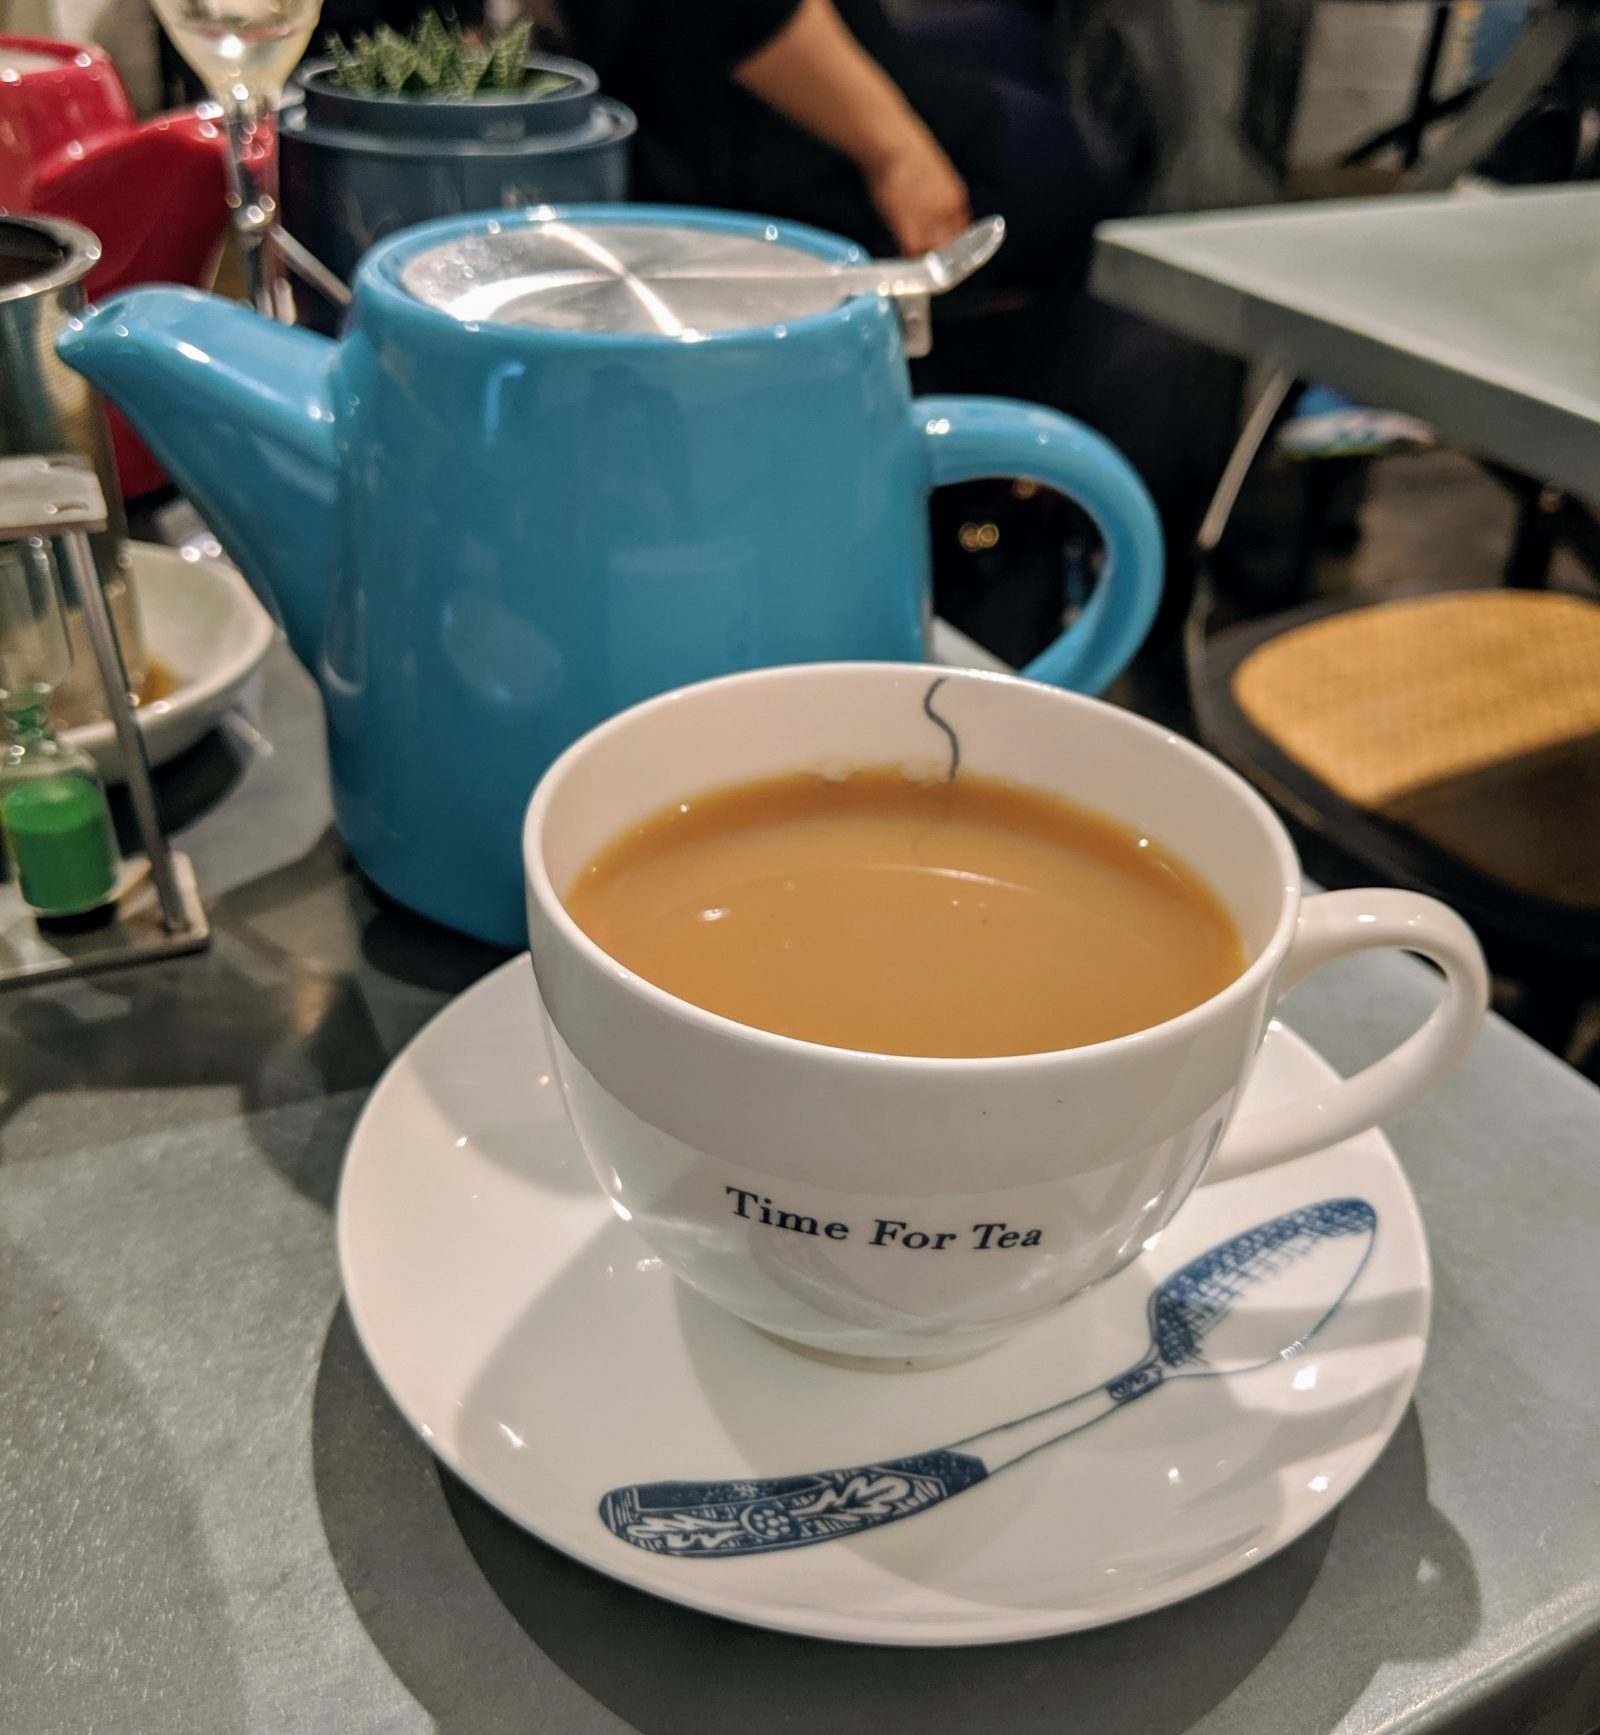 A warm cup of tea and a blue teapot